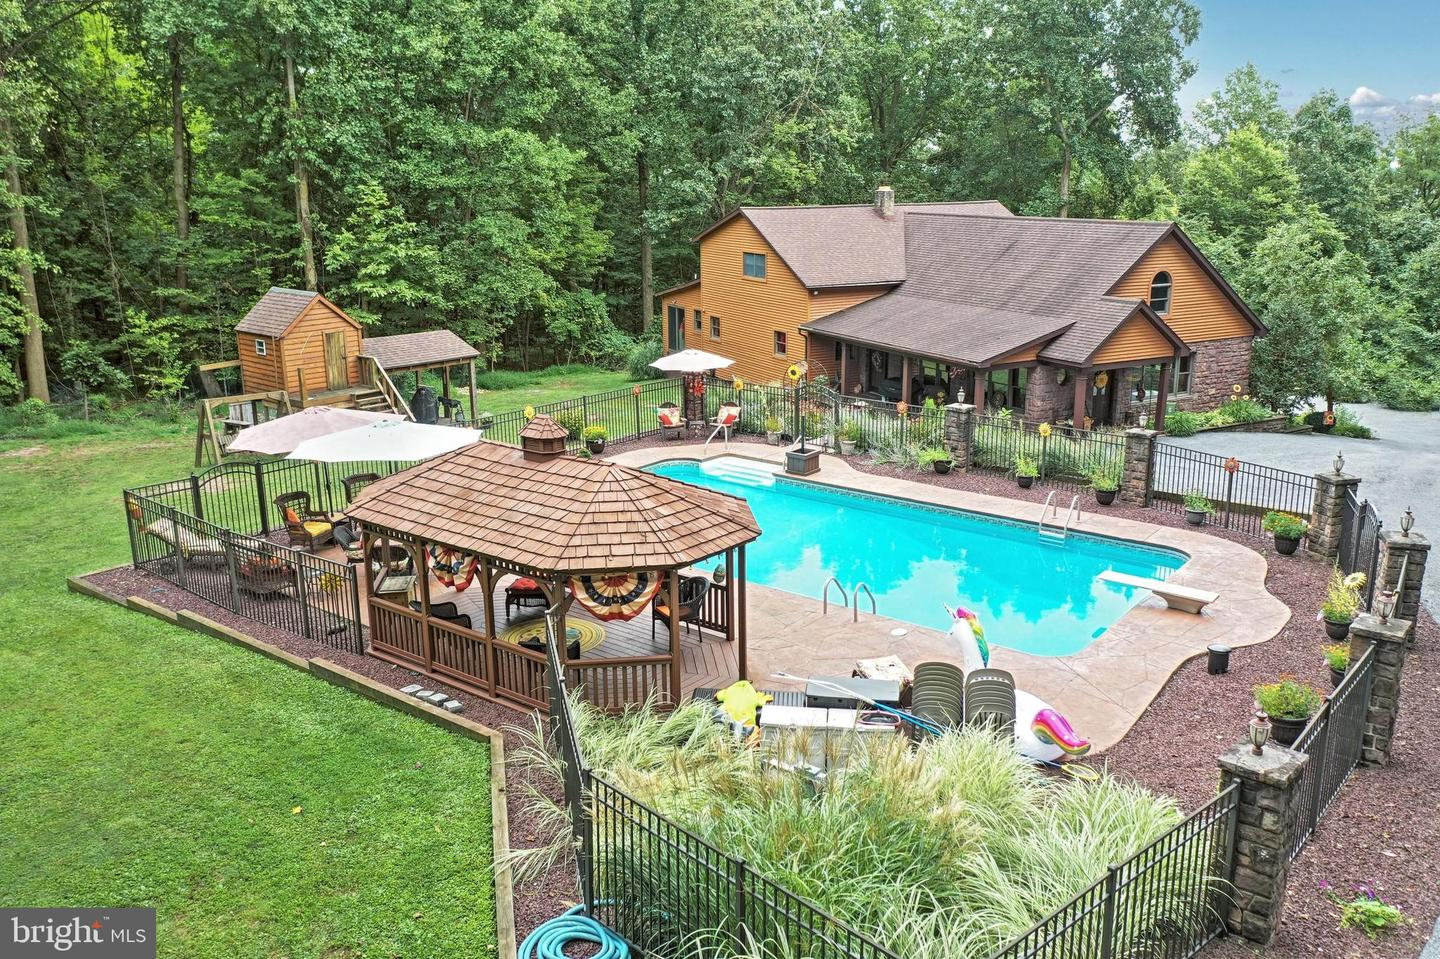 5795-C CRONE RD, DOVER, PA 17315